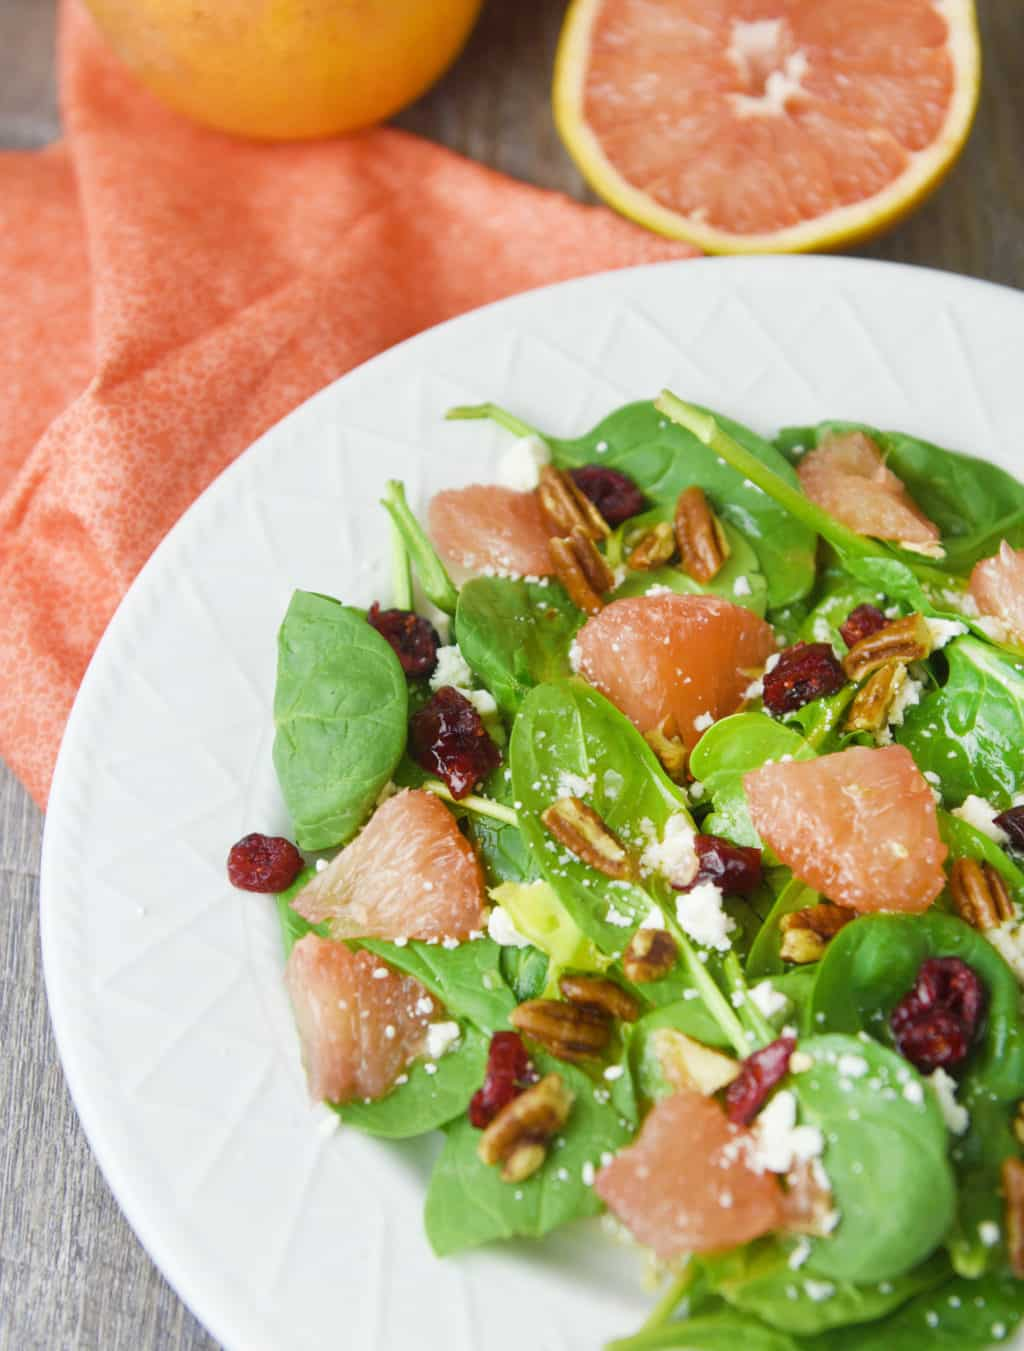 Spinach and Grapefruit Salad with Grapefruit Vinaigrette!! Sweet, tart and savory all at once!